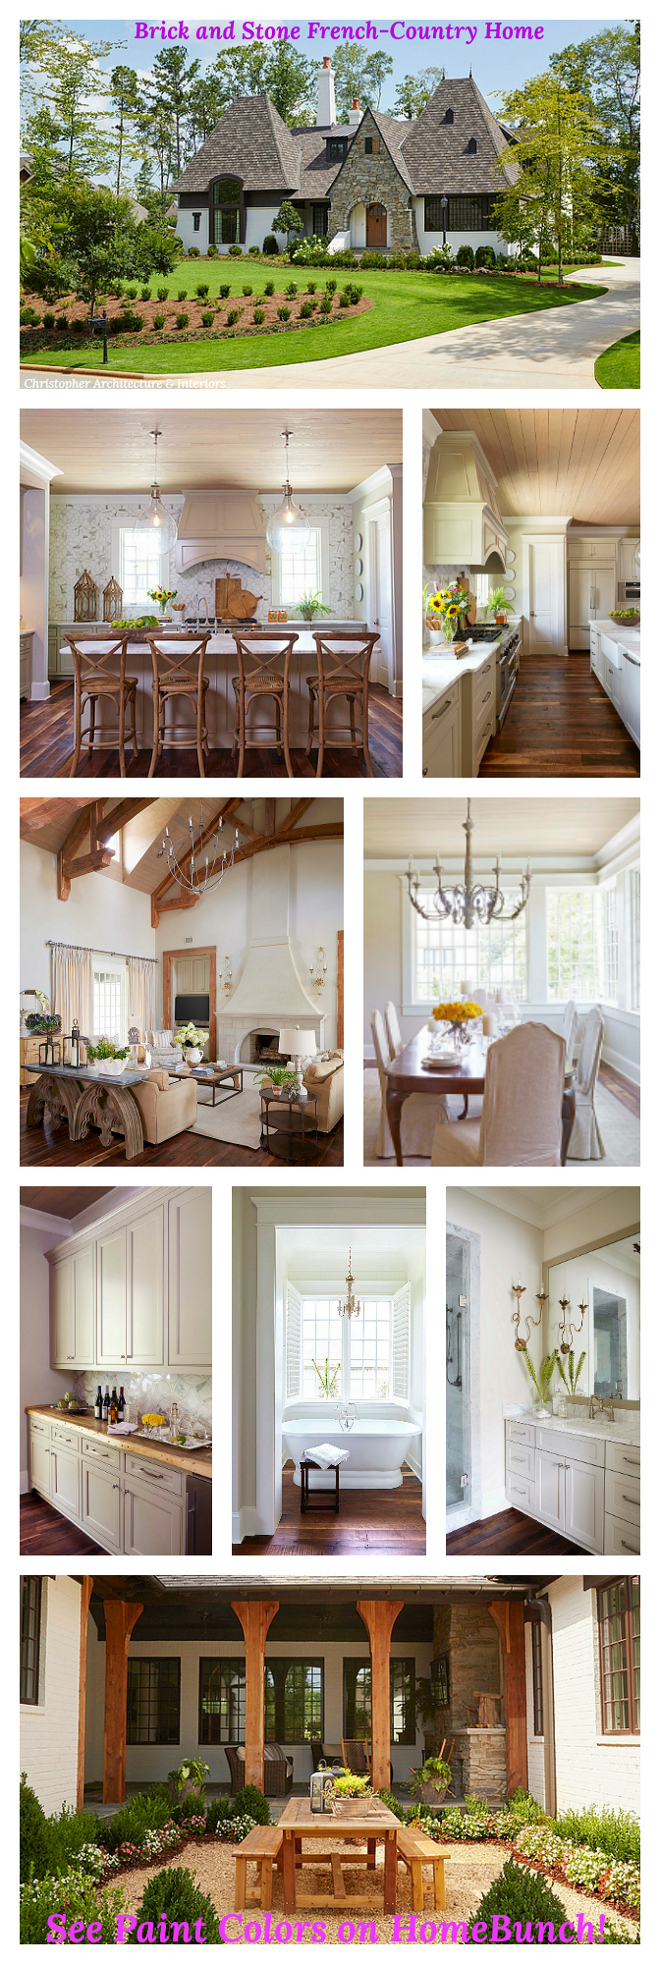 Brick and Stone French-Country Home See Paint Colors and other sources on Home Bunch